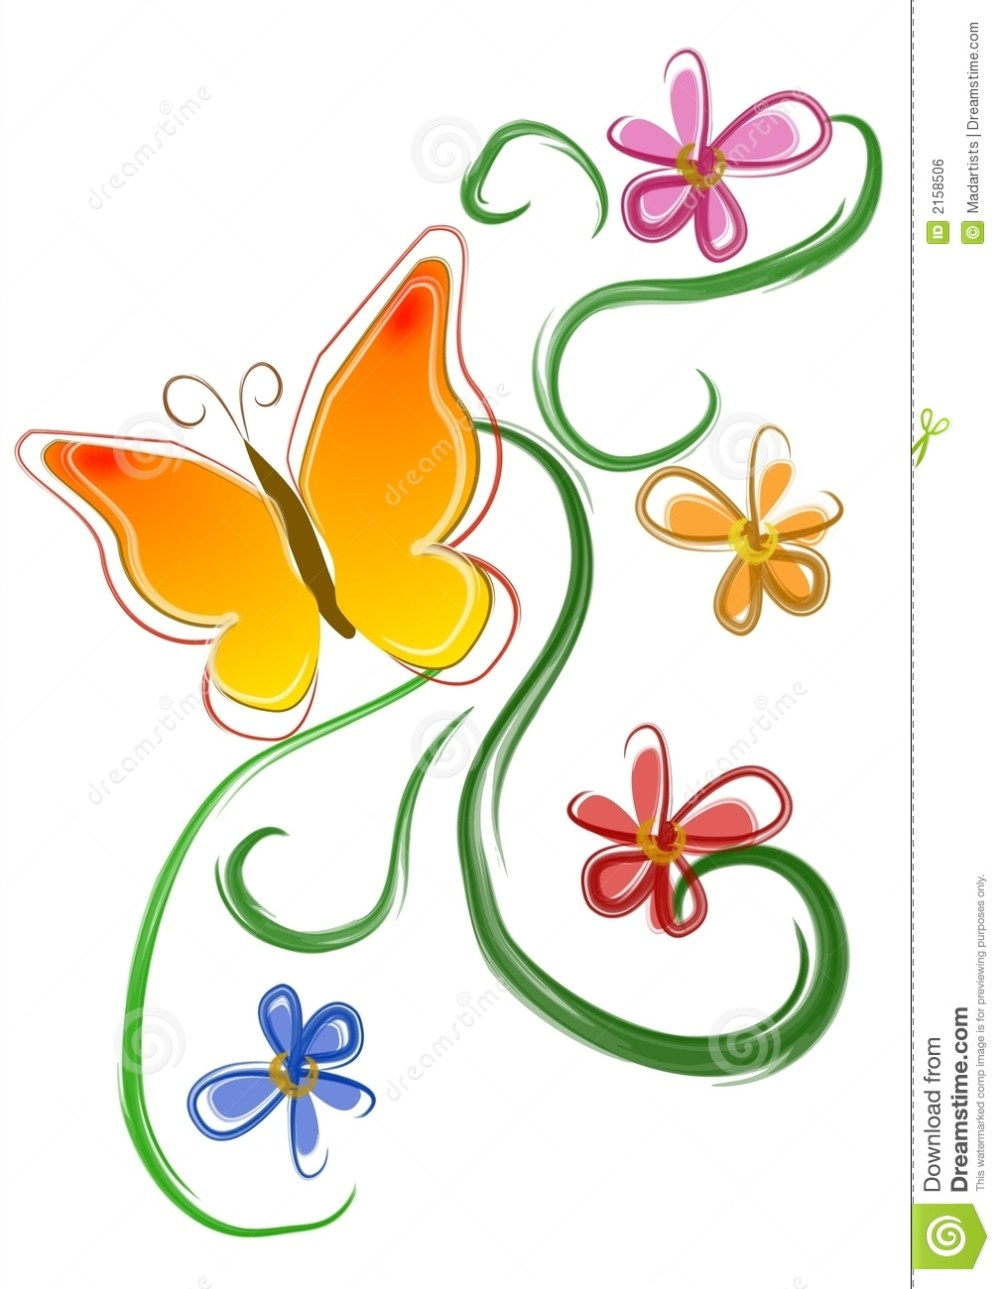 medium resolution of an isolated clip art design illustration of a yellow and orange butterfly with flowers